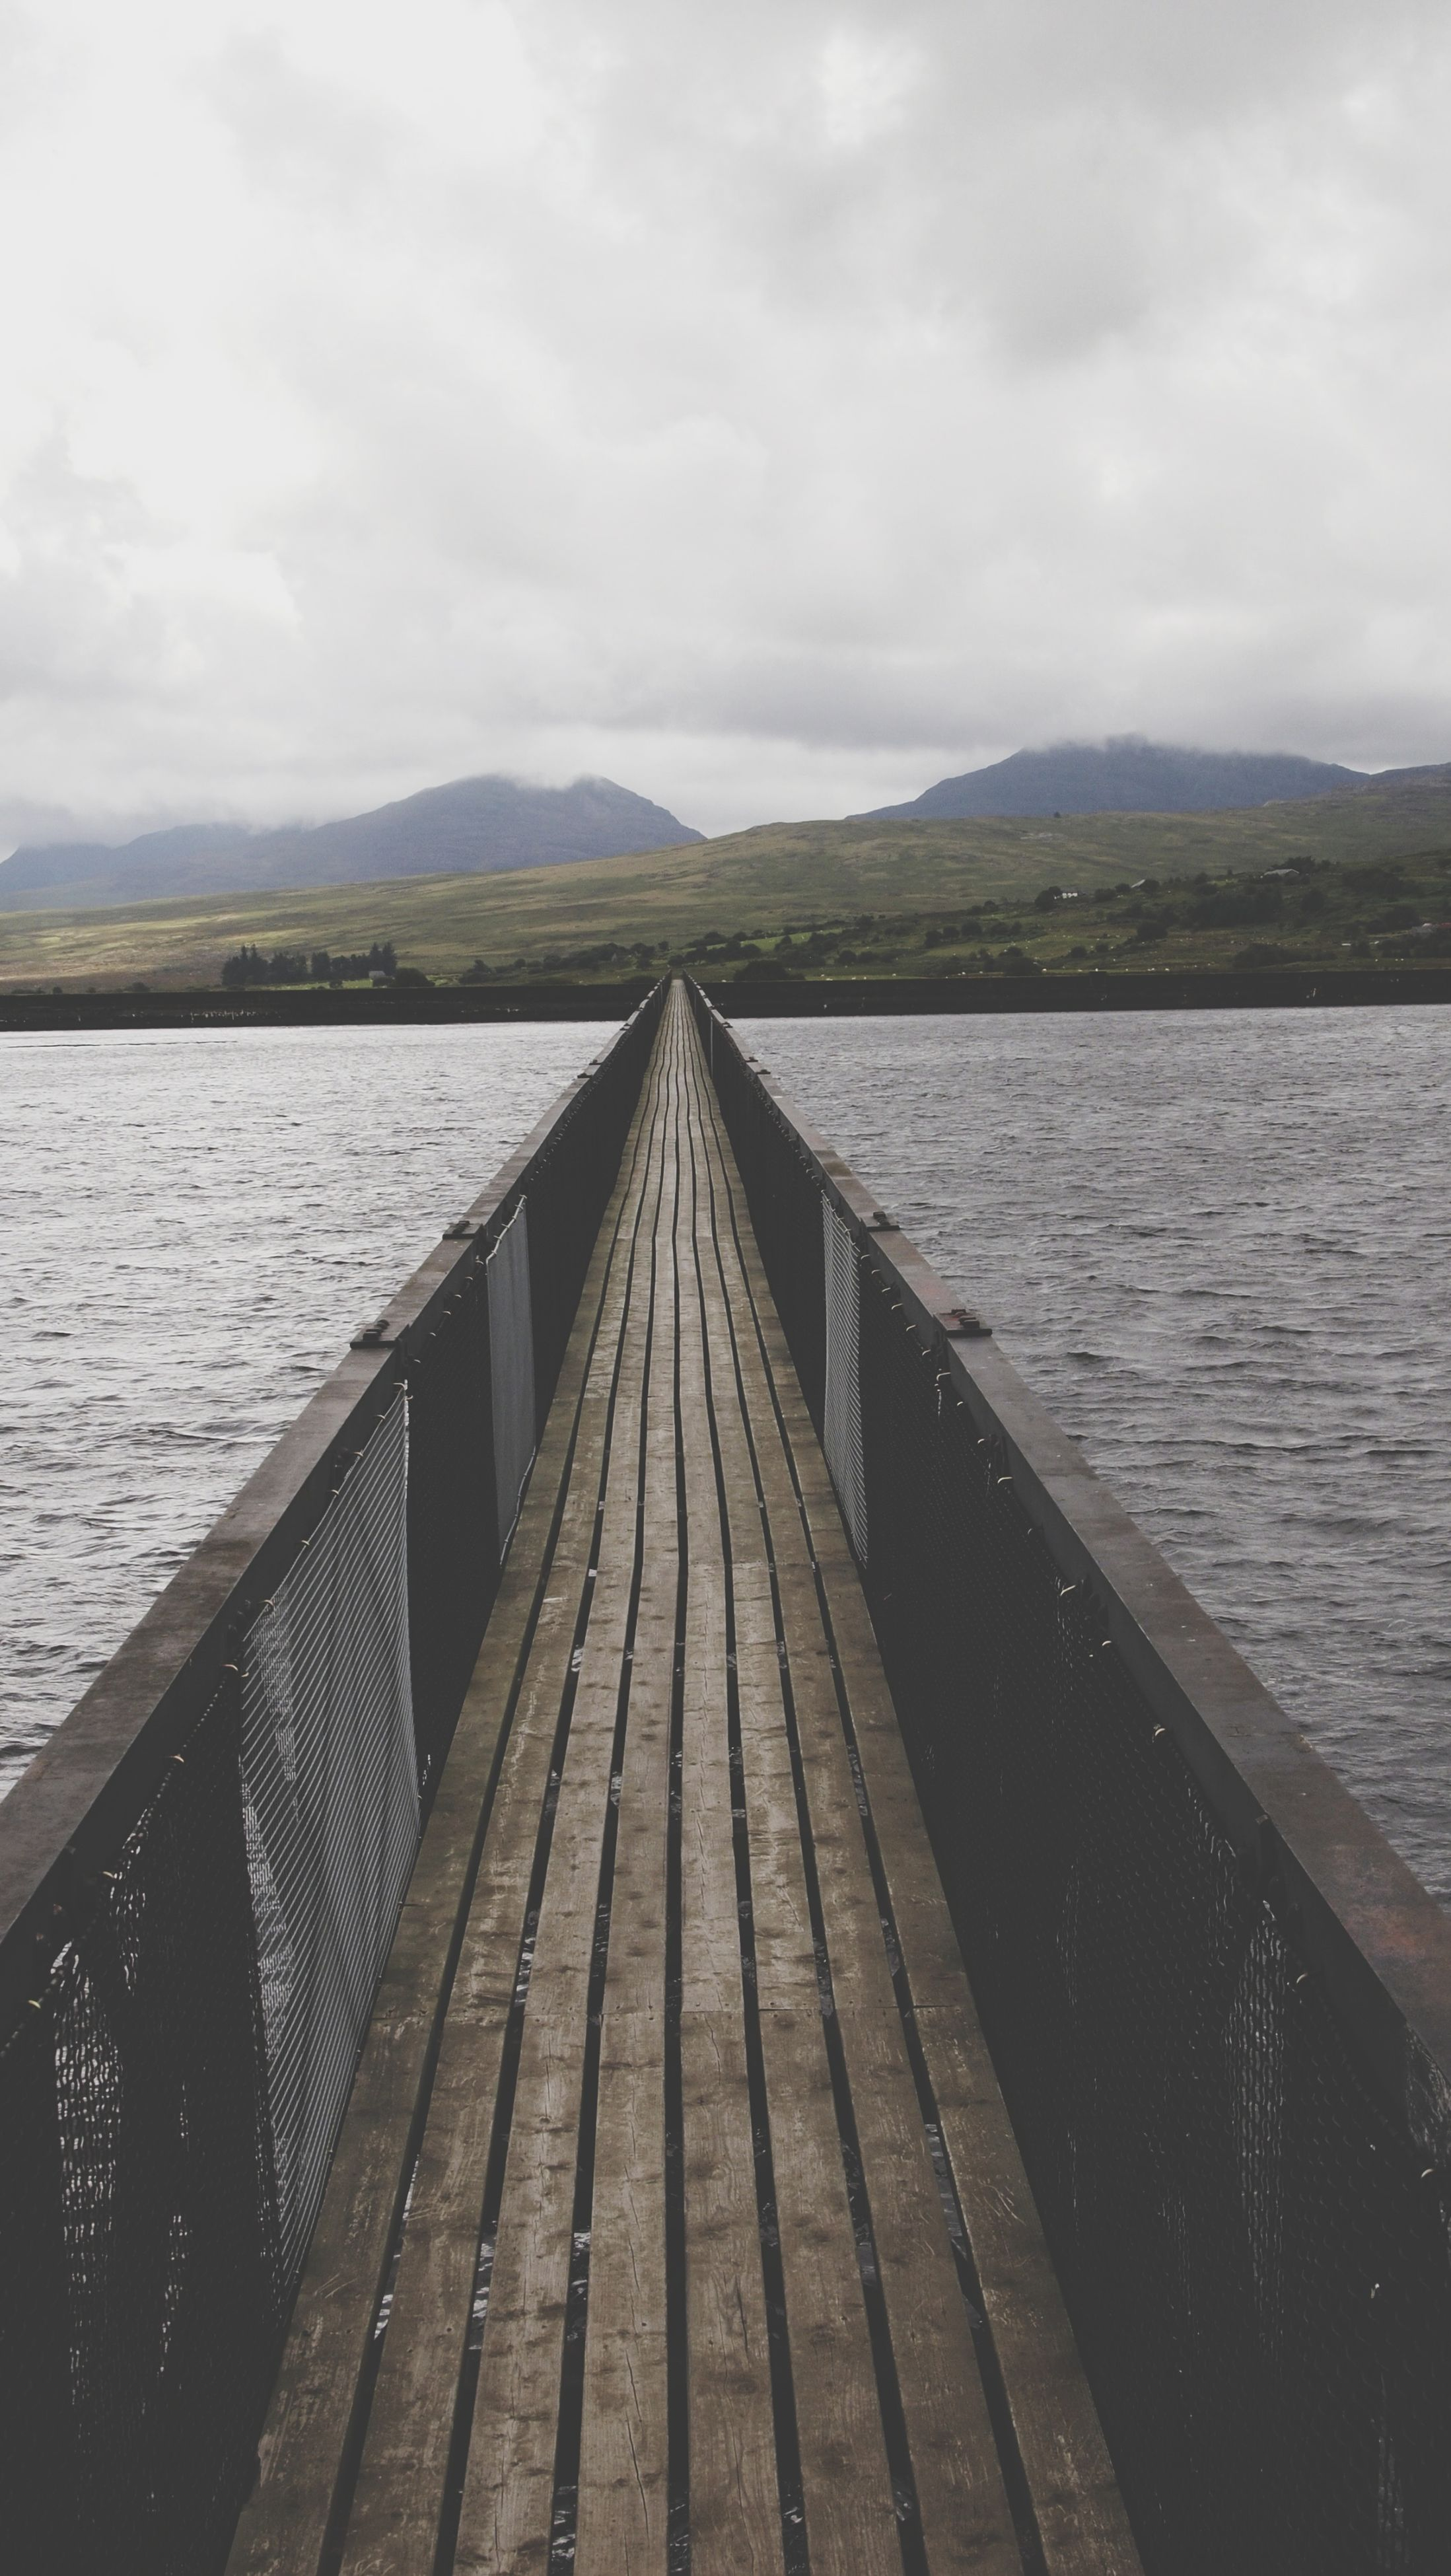 water, sky, the way forward, pier, cloud - sky, built structure, tranquil scene, tranquility, cloud, cloudy, sea, diminishing perspective, lake, architecture, jetty, scenics, wood - material, mountain, nature, railing